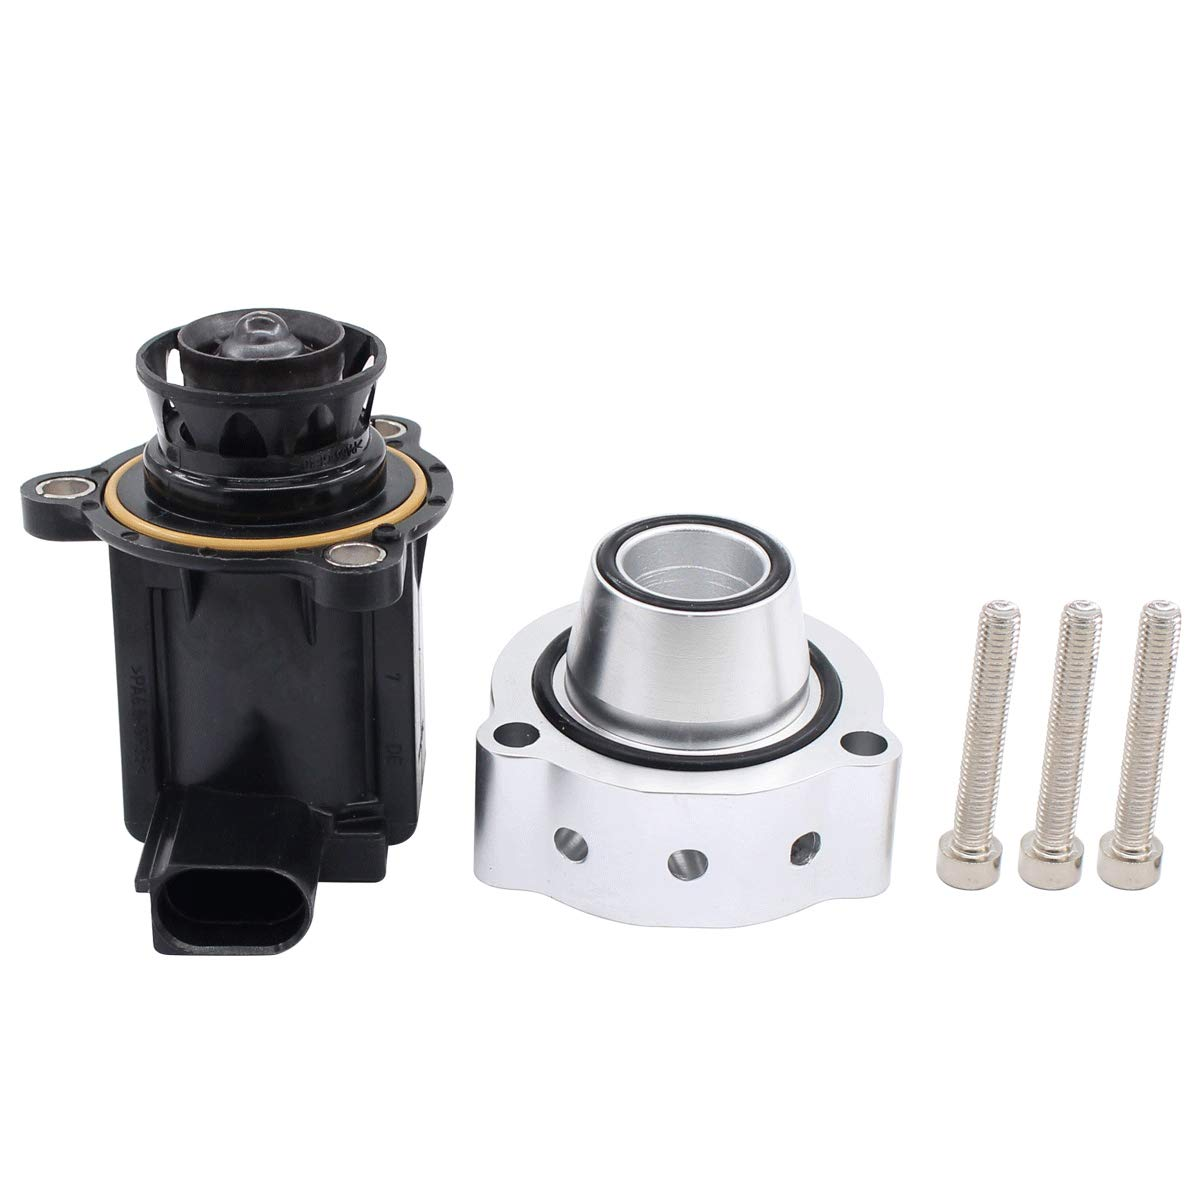 NewYall Blow Off Valve and Cut Off Valve Diverter Kit with Bolts